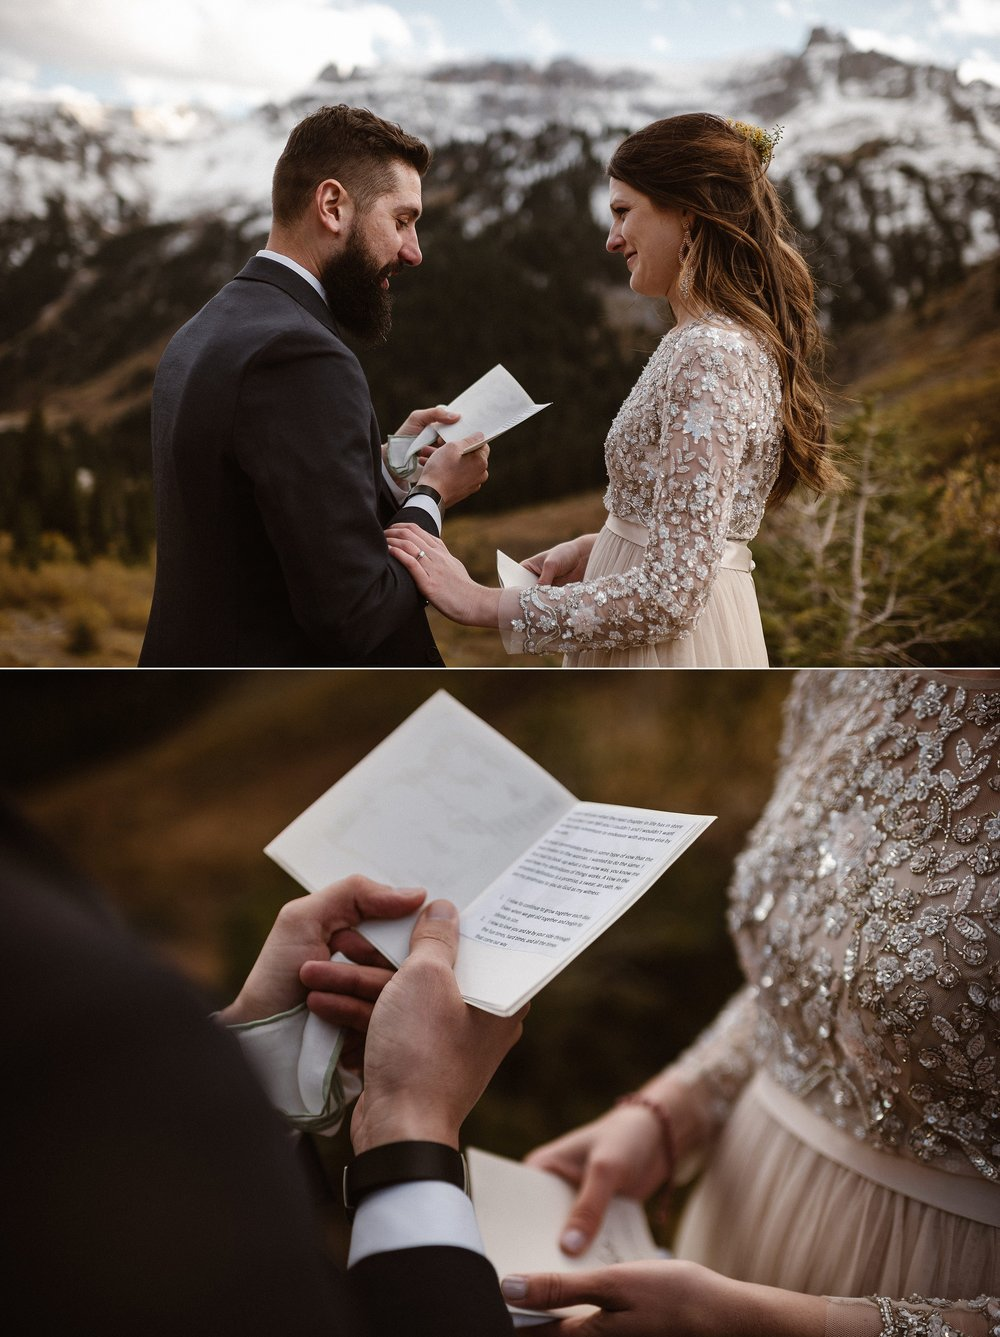 Ending with a fond and funny memory, they giggled as their private elopement ceremony came to an end. The high alpine winds of the San Juan Mountains whipping around Yankee Boy Basin where Jen and Dan picked for their biggest adventure yet. Photos of this romantic elopement in Ouray, Colorado by traveling elopement photographer Maddie Mae.